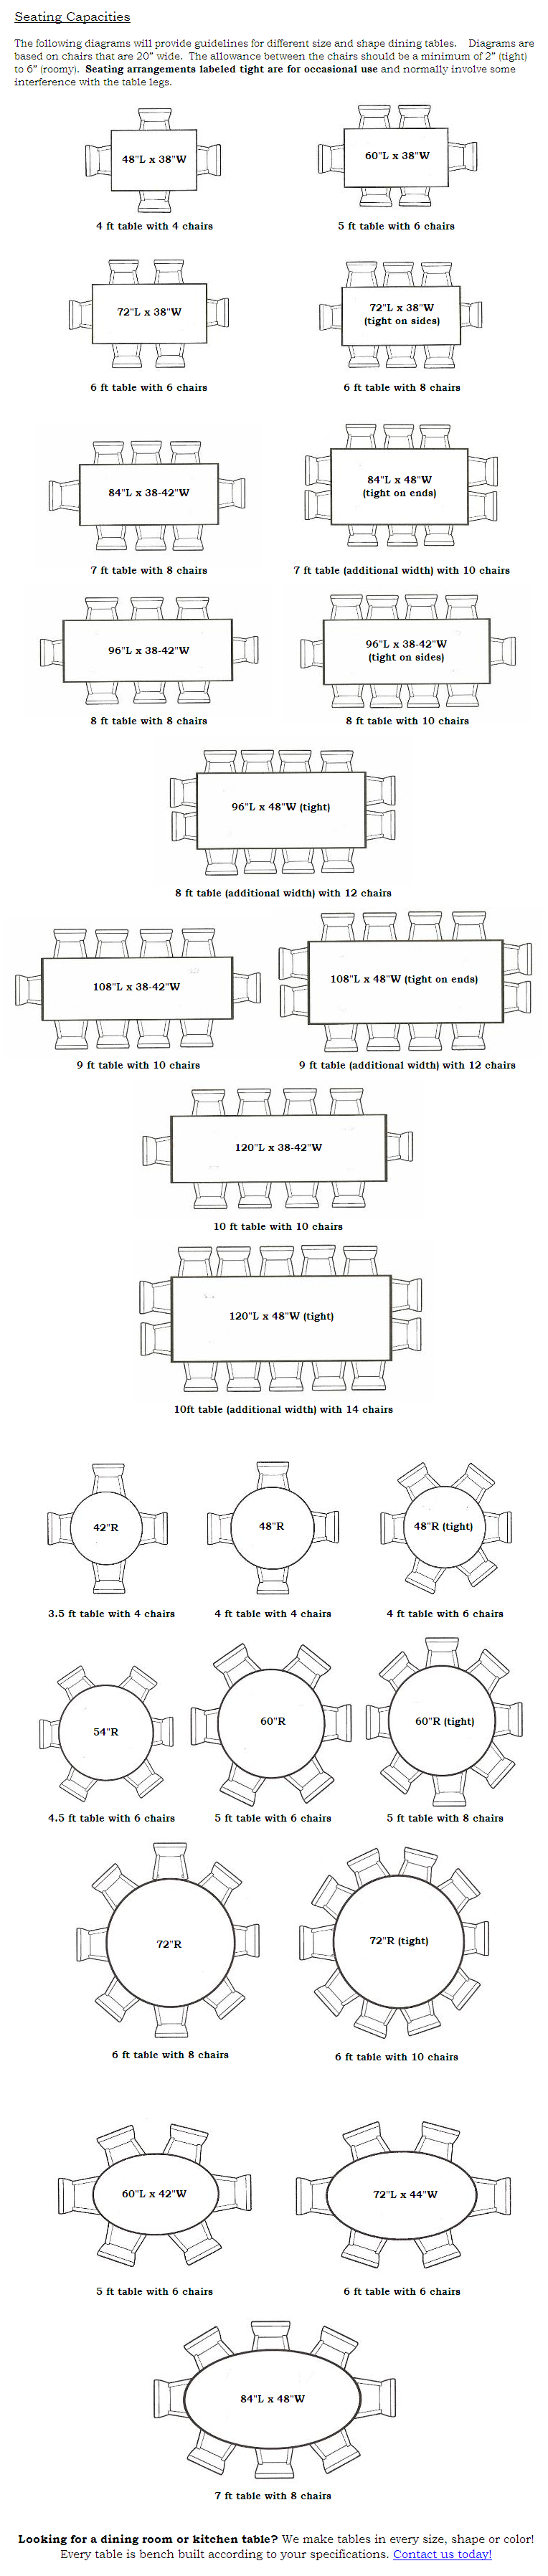 Dining Table Seating Capacities Chart By Size And Shape Perfect For Making Sure That Every Guest In Comfortable Bringthewine